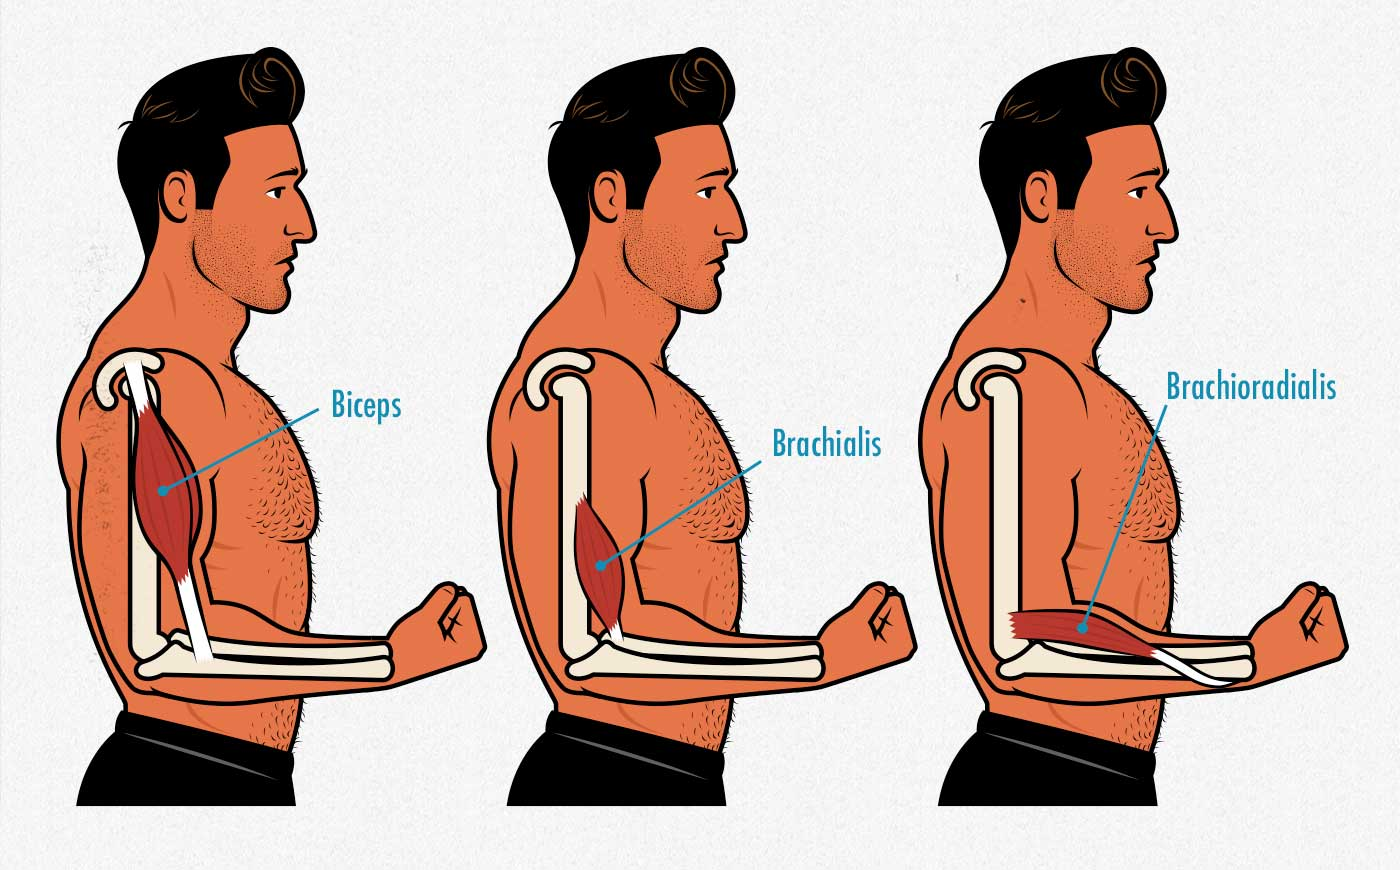 Illustration showing the different elbow flexor muscles, including the brachioradialis forearm muscle.